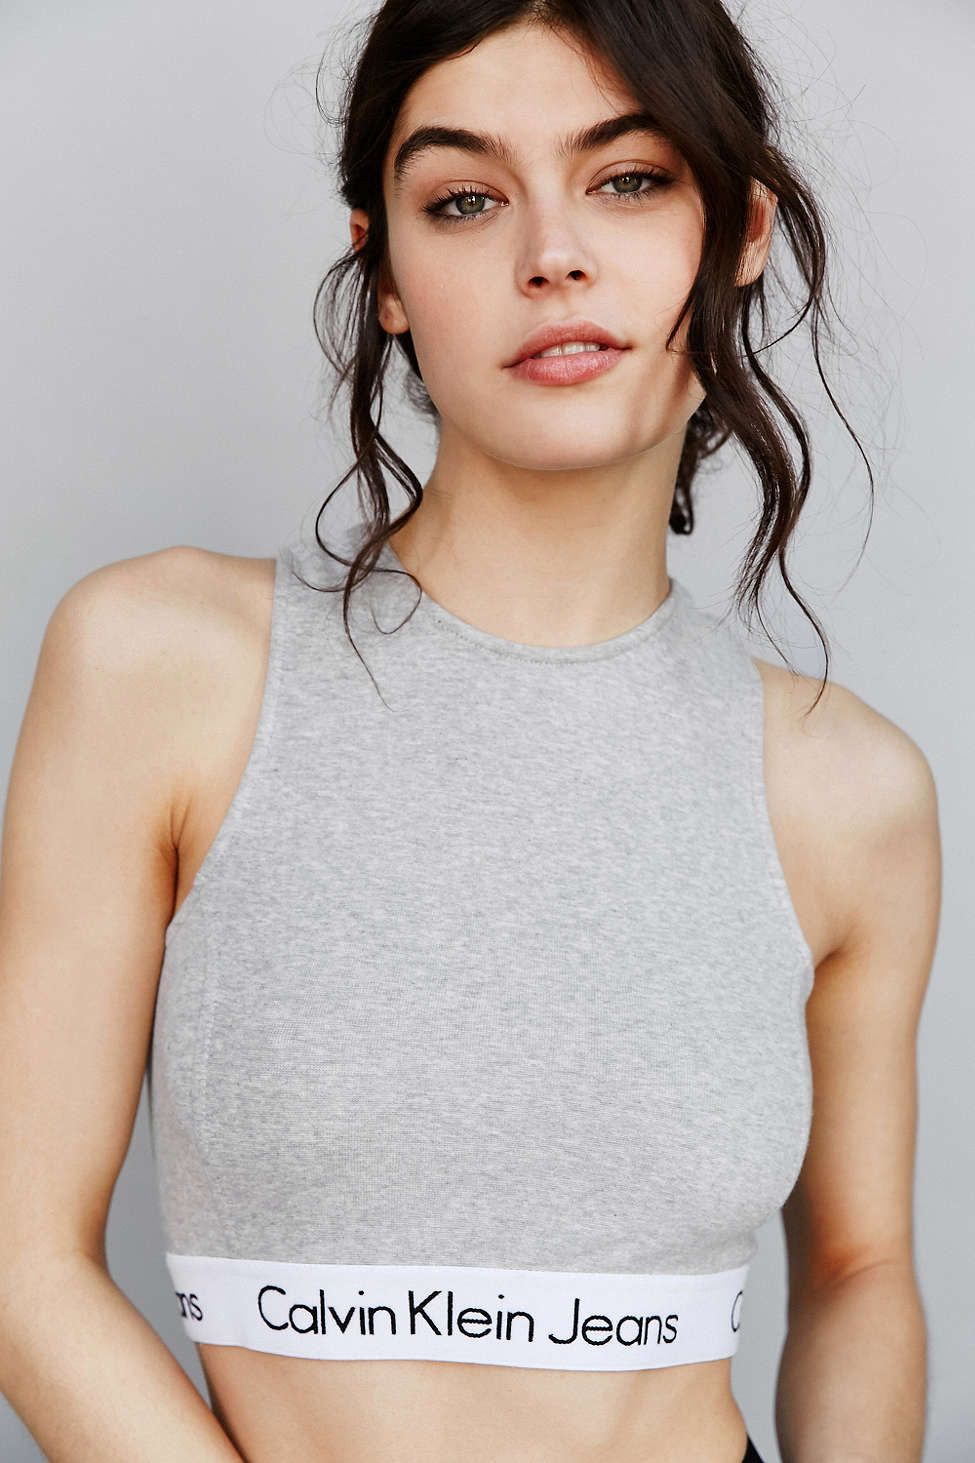 abb3723af0f302 Calvin Klein For UO High-Neck Tank Top maybe i pinned this already. idc  because it s so cute!!